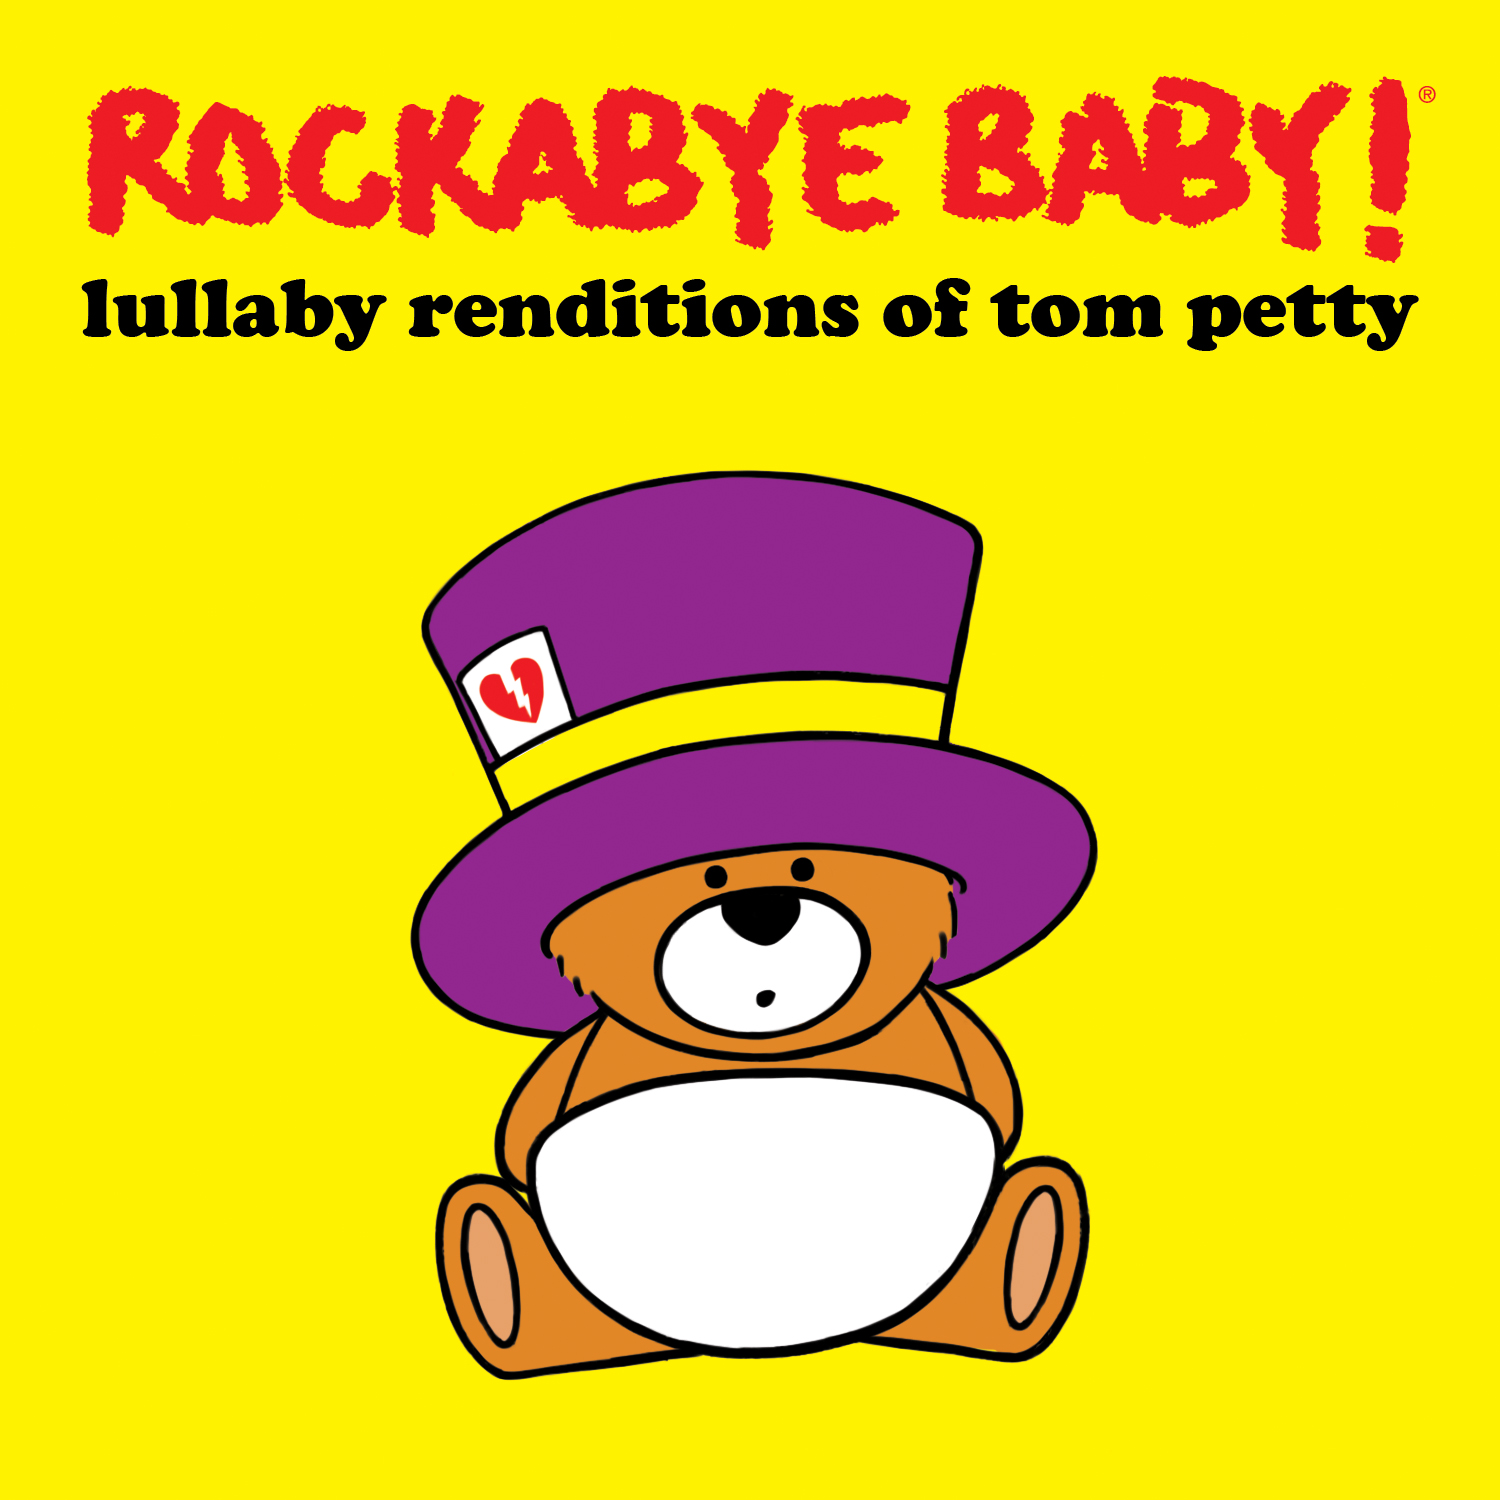 Rockabye Baby! - Lullaby Renditions of Tom Petty